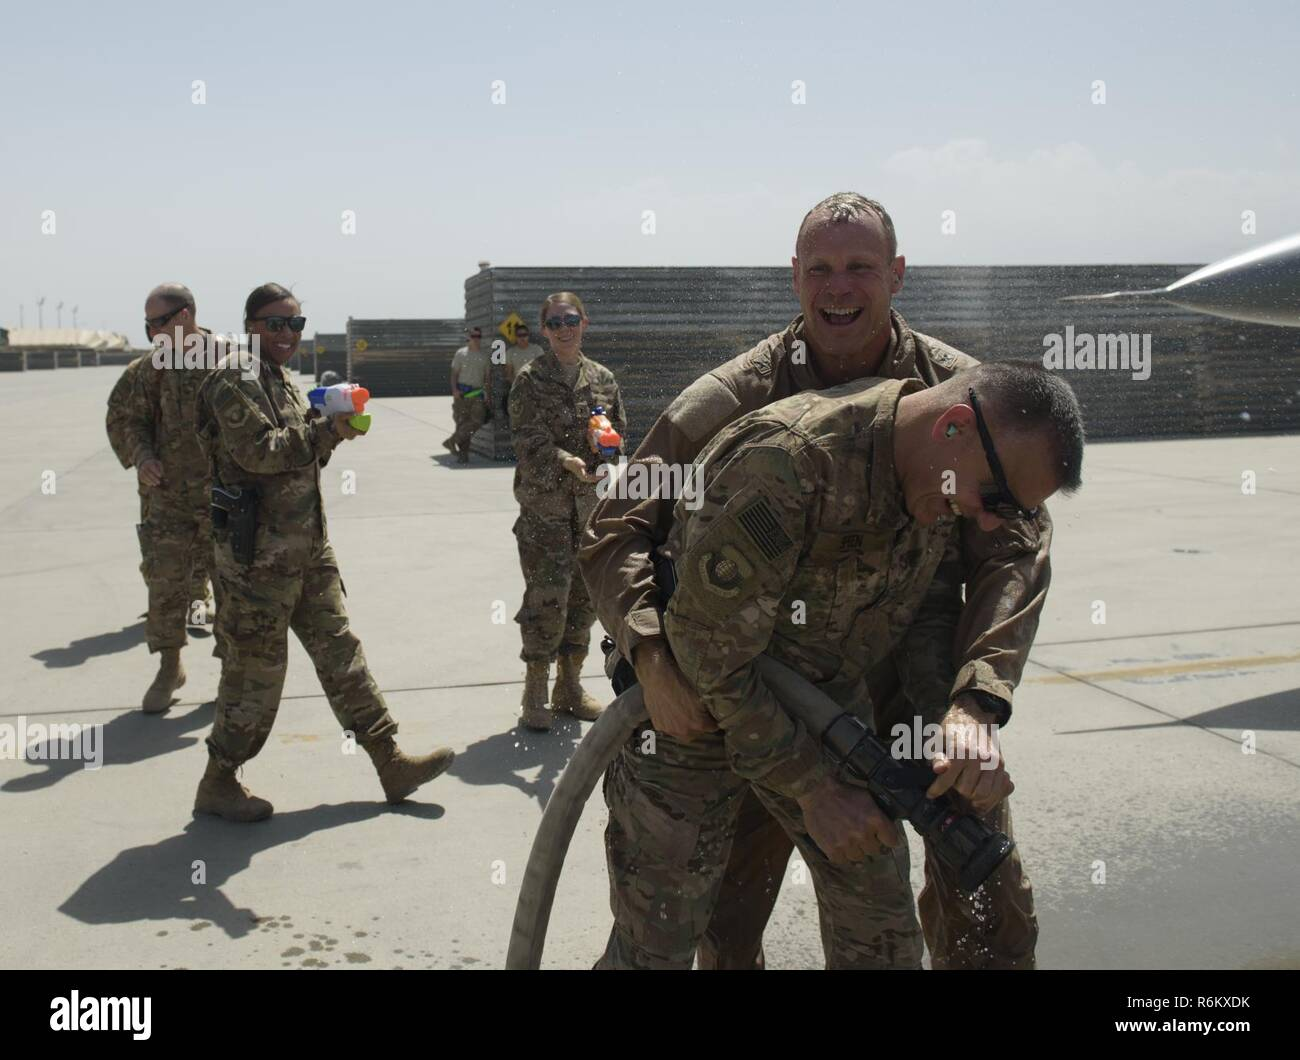 Brig. Gen. Jim Sears, commander of the 455th Air Expeditionary Wing, wrestles a fire hose away from Chief Master Sgt. Peter Speen, command chief of the 455th AEW, after completing his fini flight at Bagram Airfield, Afghanistan, May 22, 2017. Sears, who commanded the 455th AEW for the last 12 months, is a command pilot with more than 3,200 flying hours, including combat missions over Iraq and Afghanistan. Stock Photo